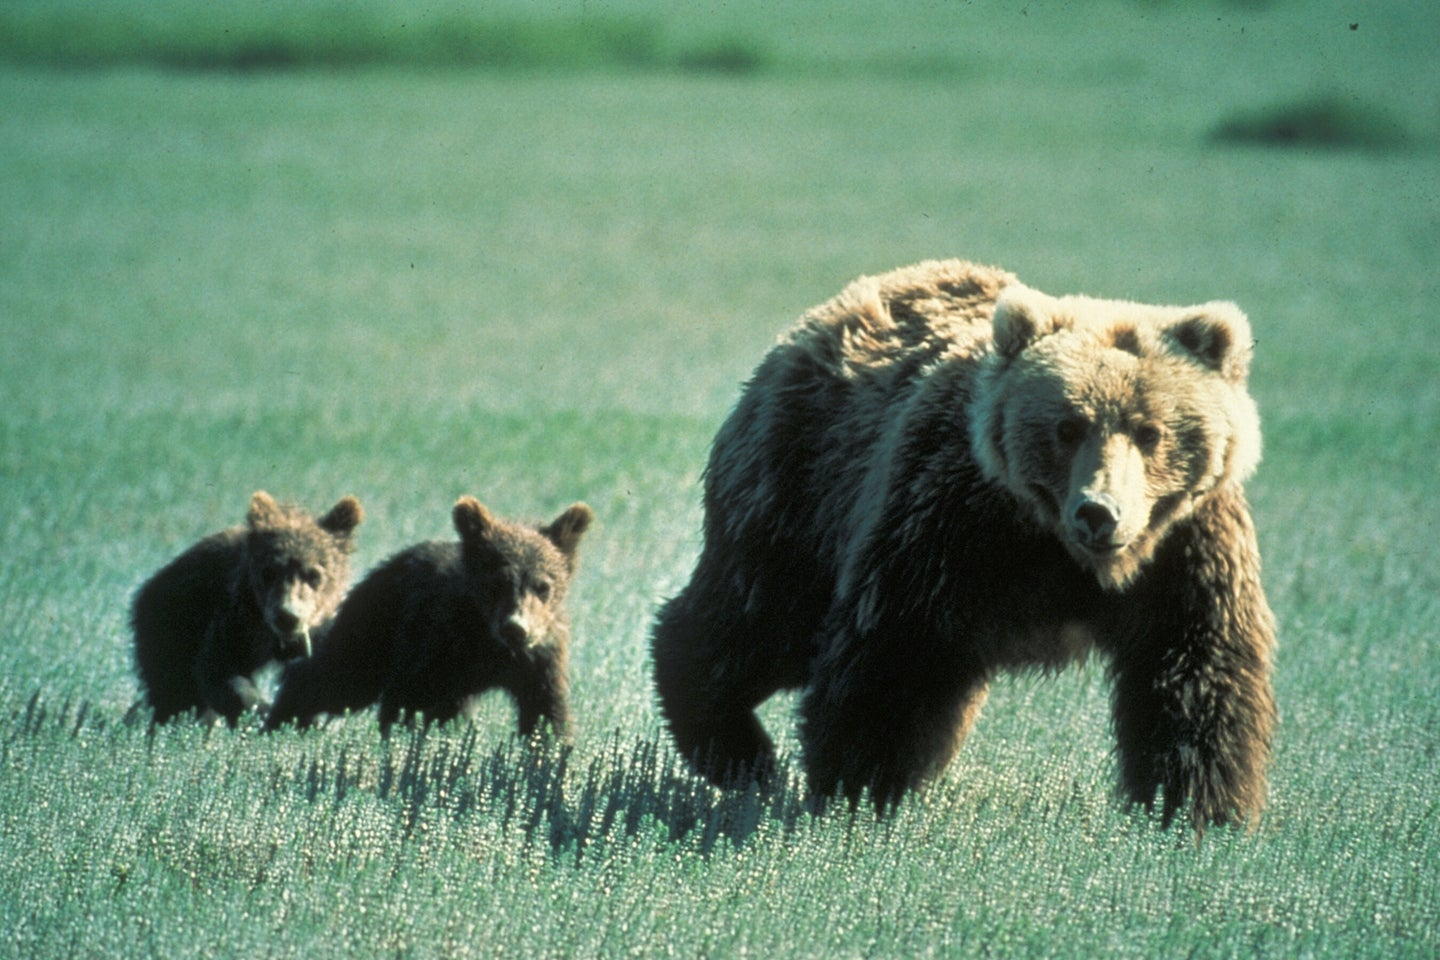 Two hikers were attacked by a grizzly.